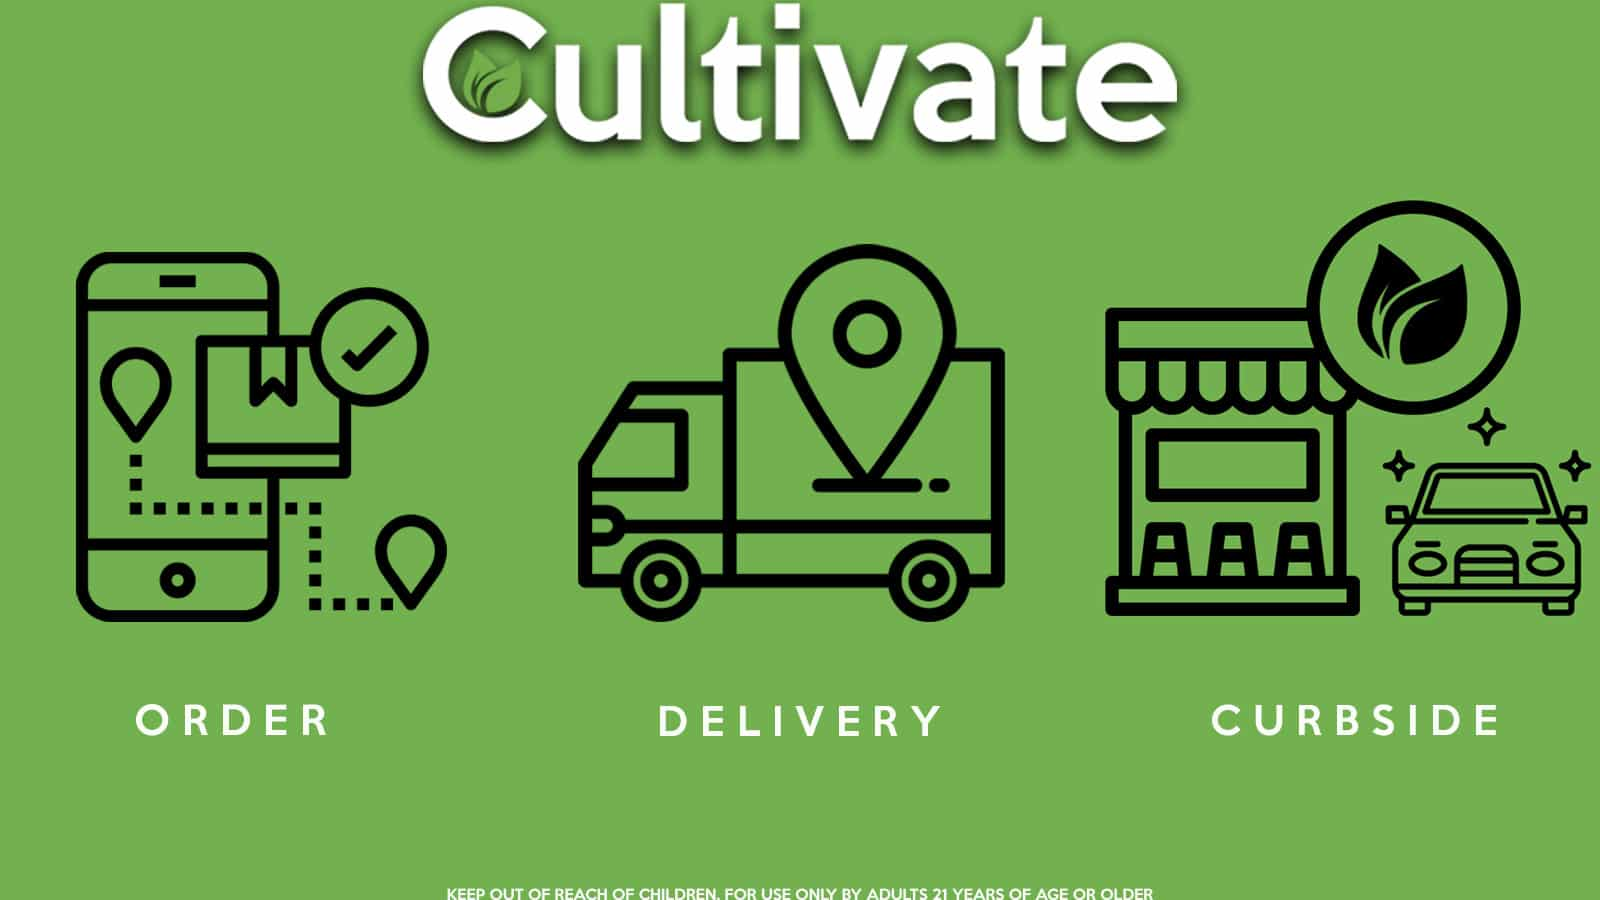 Cultivate Las Vegas Dispensary. How To Use Cultivate's Delivery & Curbside Pick-Up